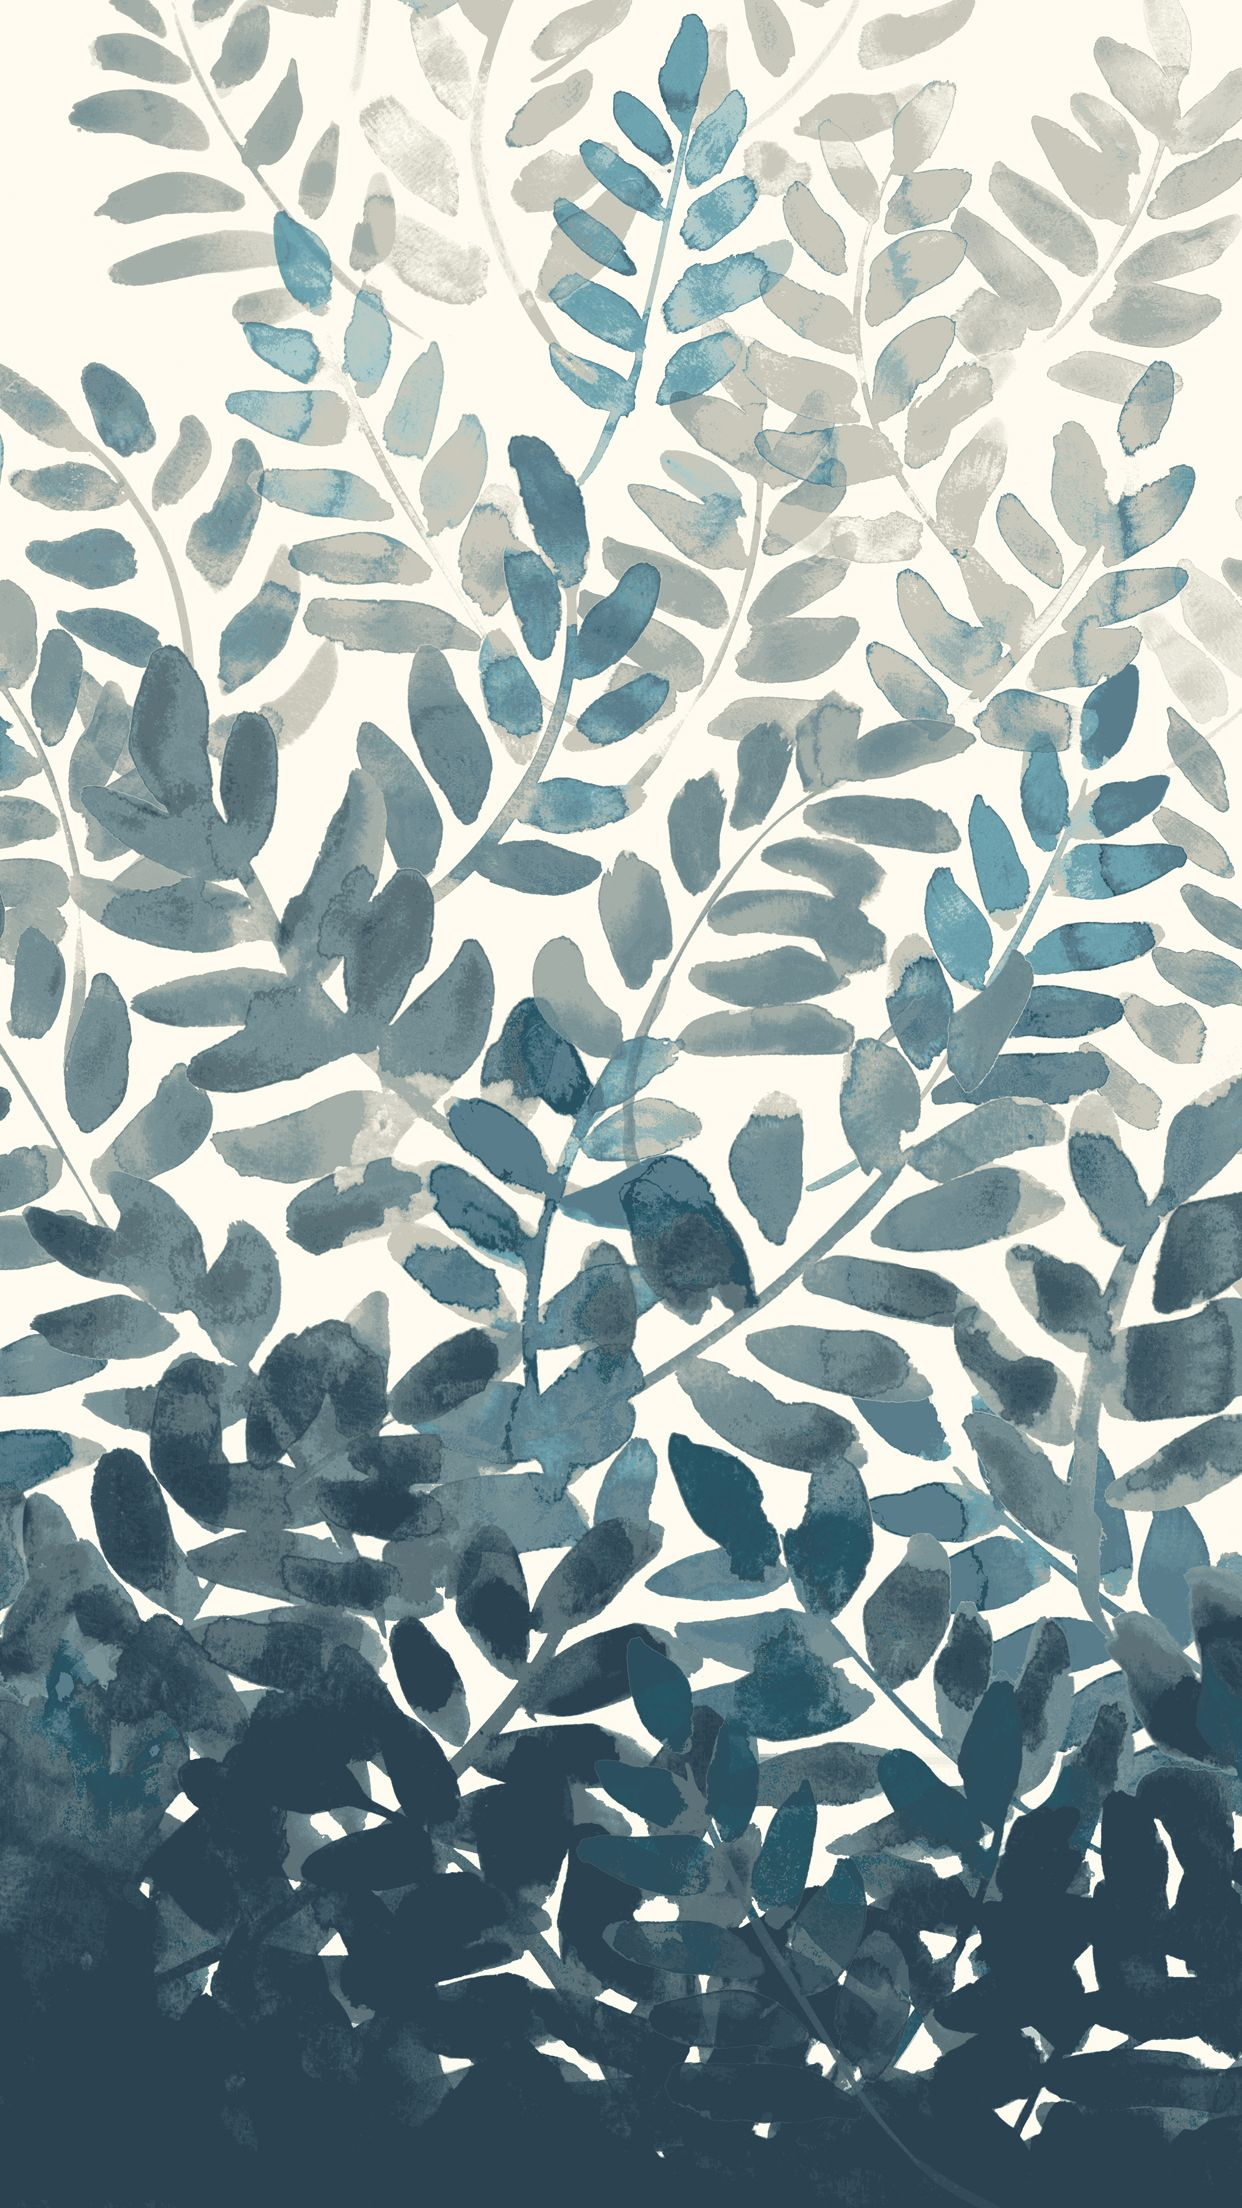 West Elm Watercolor Fern Wallpaper 1 Jpg 1242 2208 Akvarelnye Oboi Illyustracii Rastenij Oboi